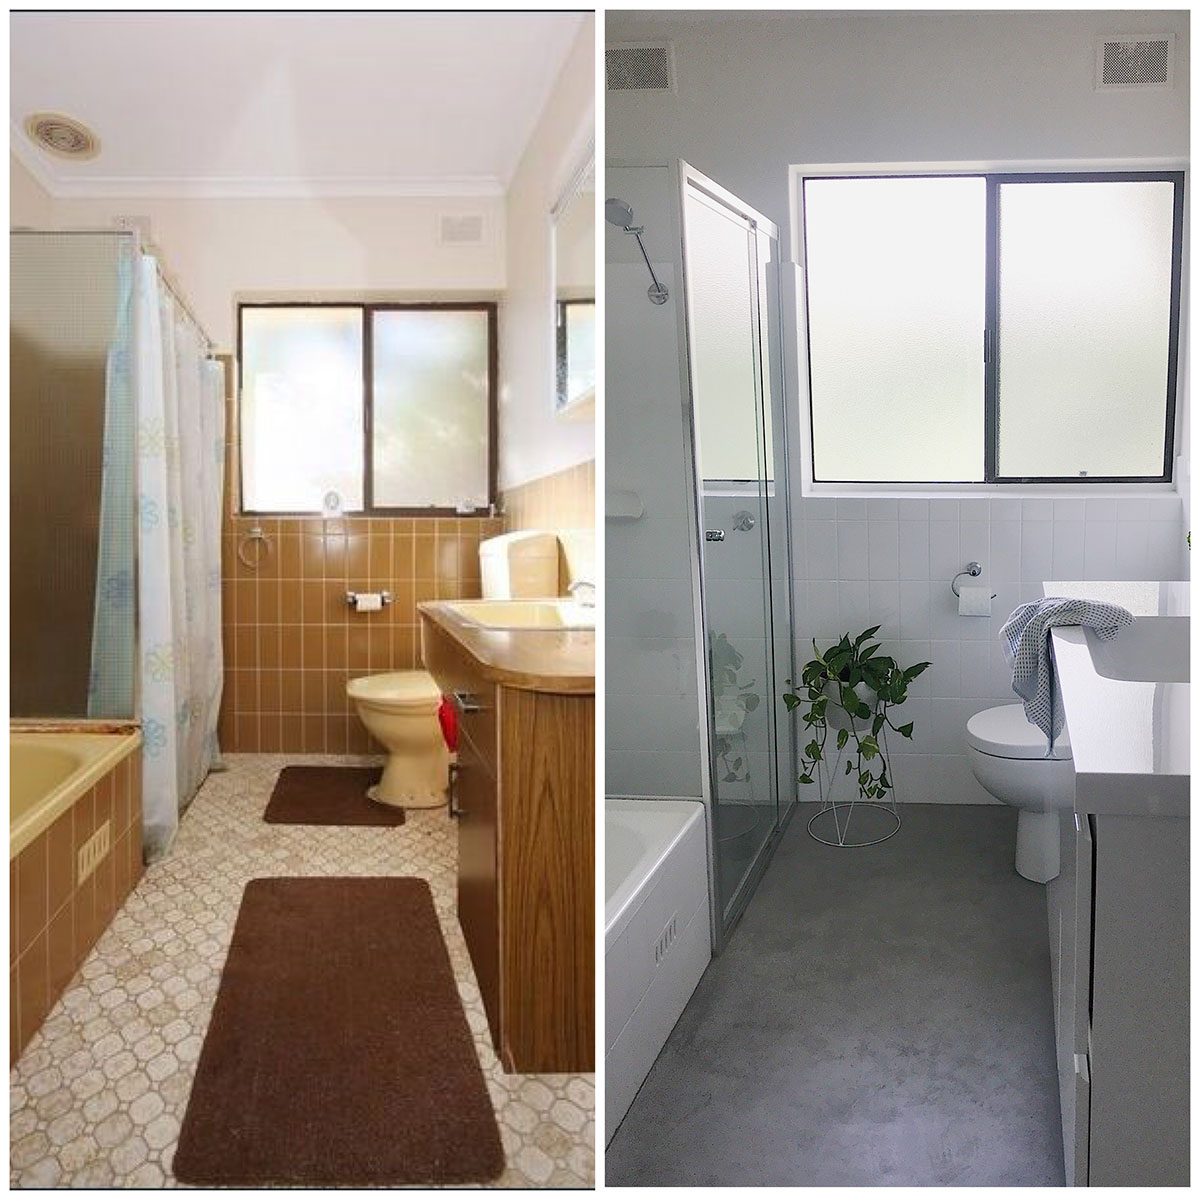 Retro Revamp | Transforming dated rooms into fresh modern spaces. Specialising in Bathroom ...